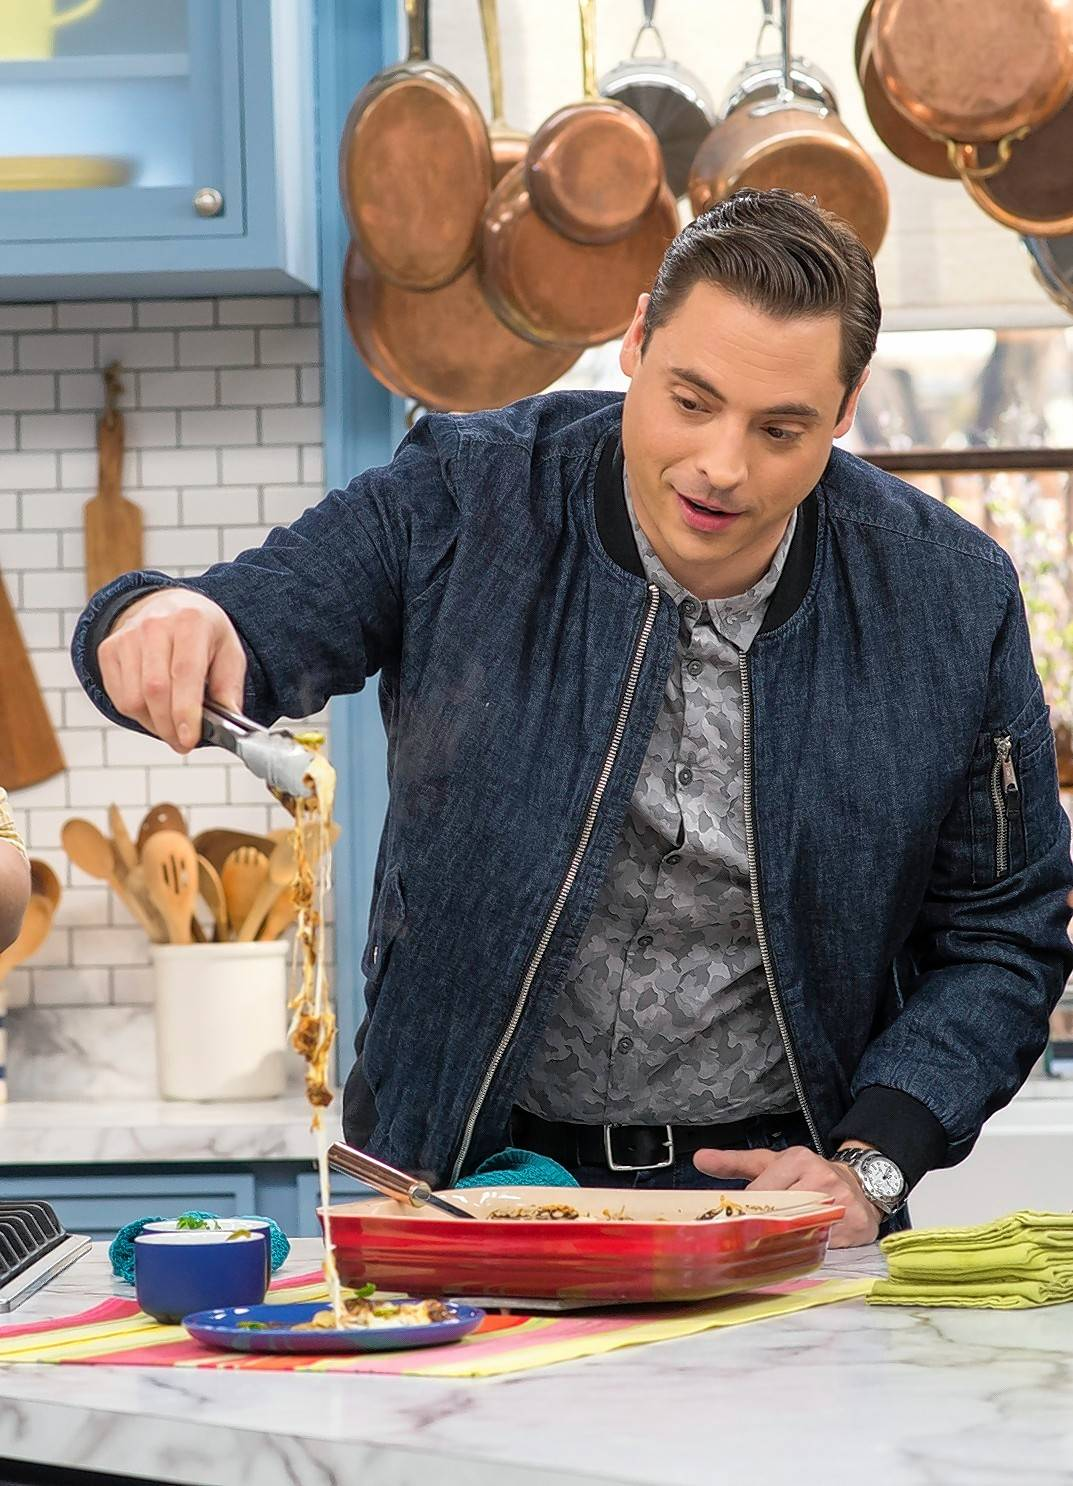 Food Network's 'Sandwich King' cherishes life in the suburbs